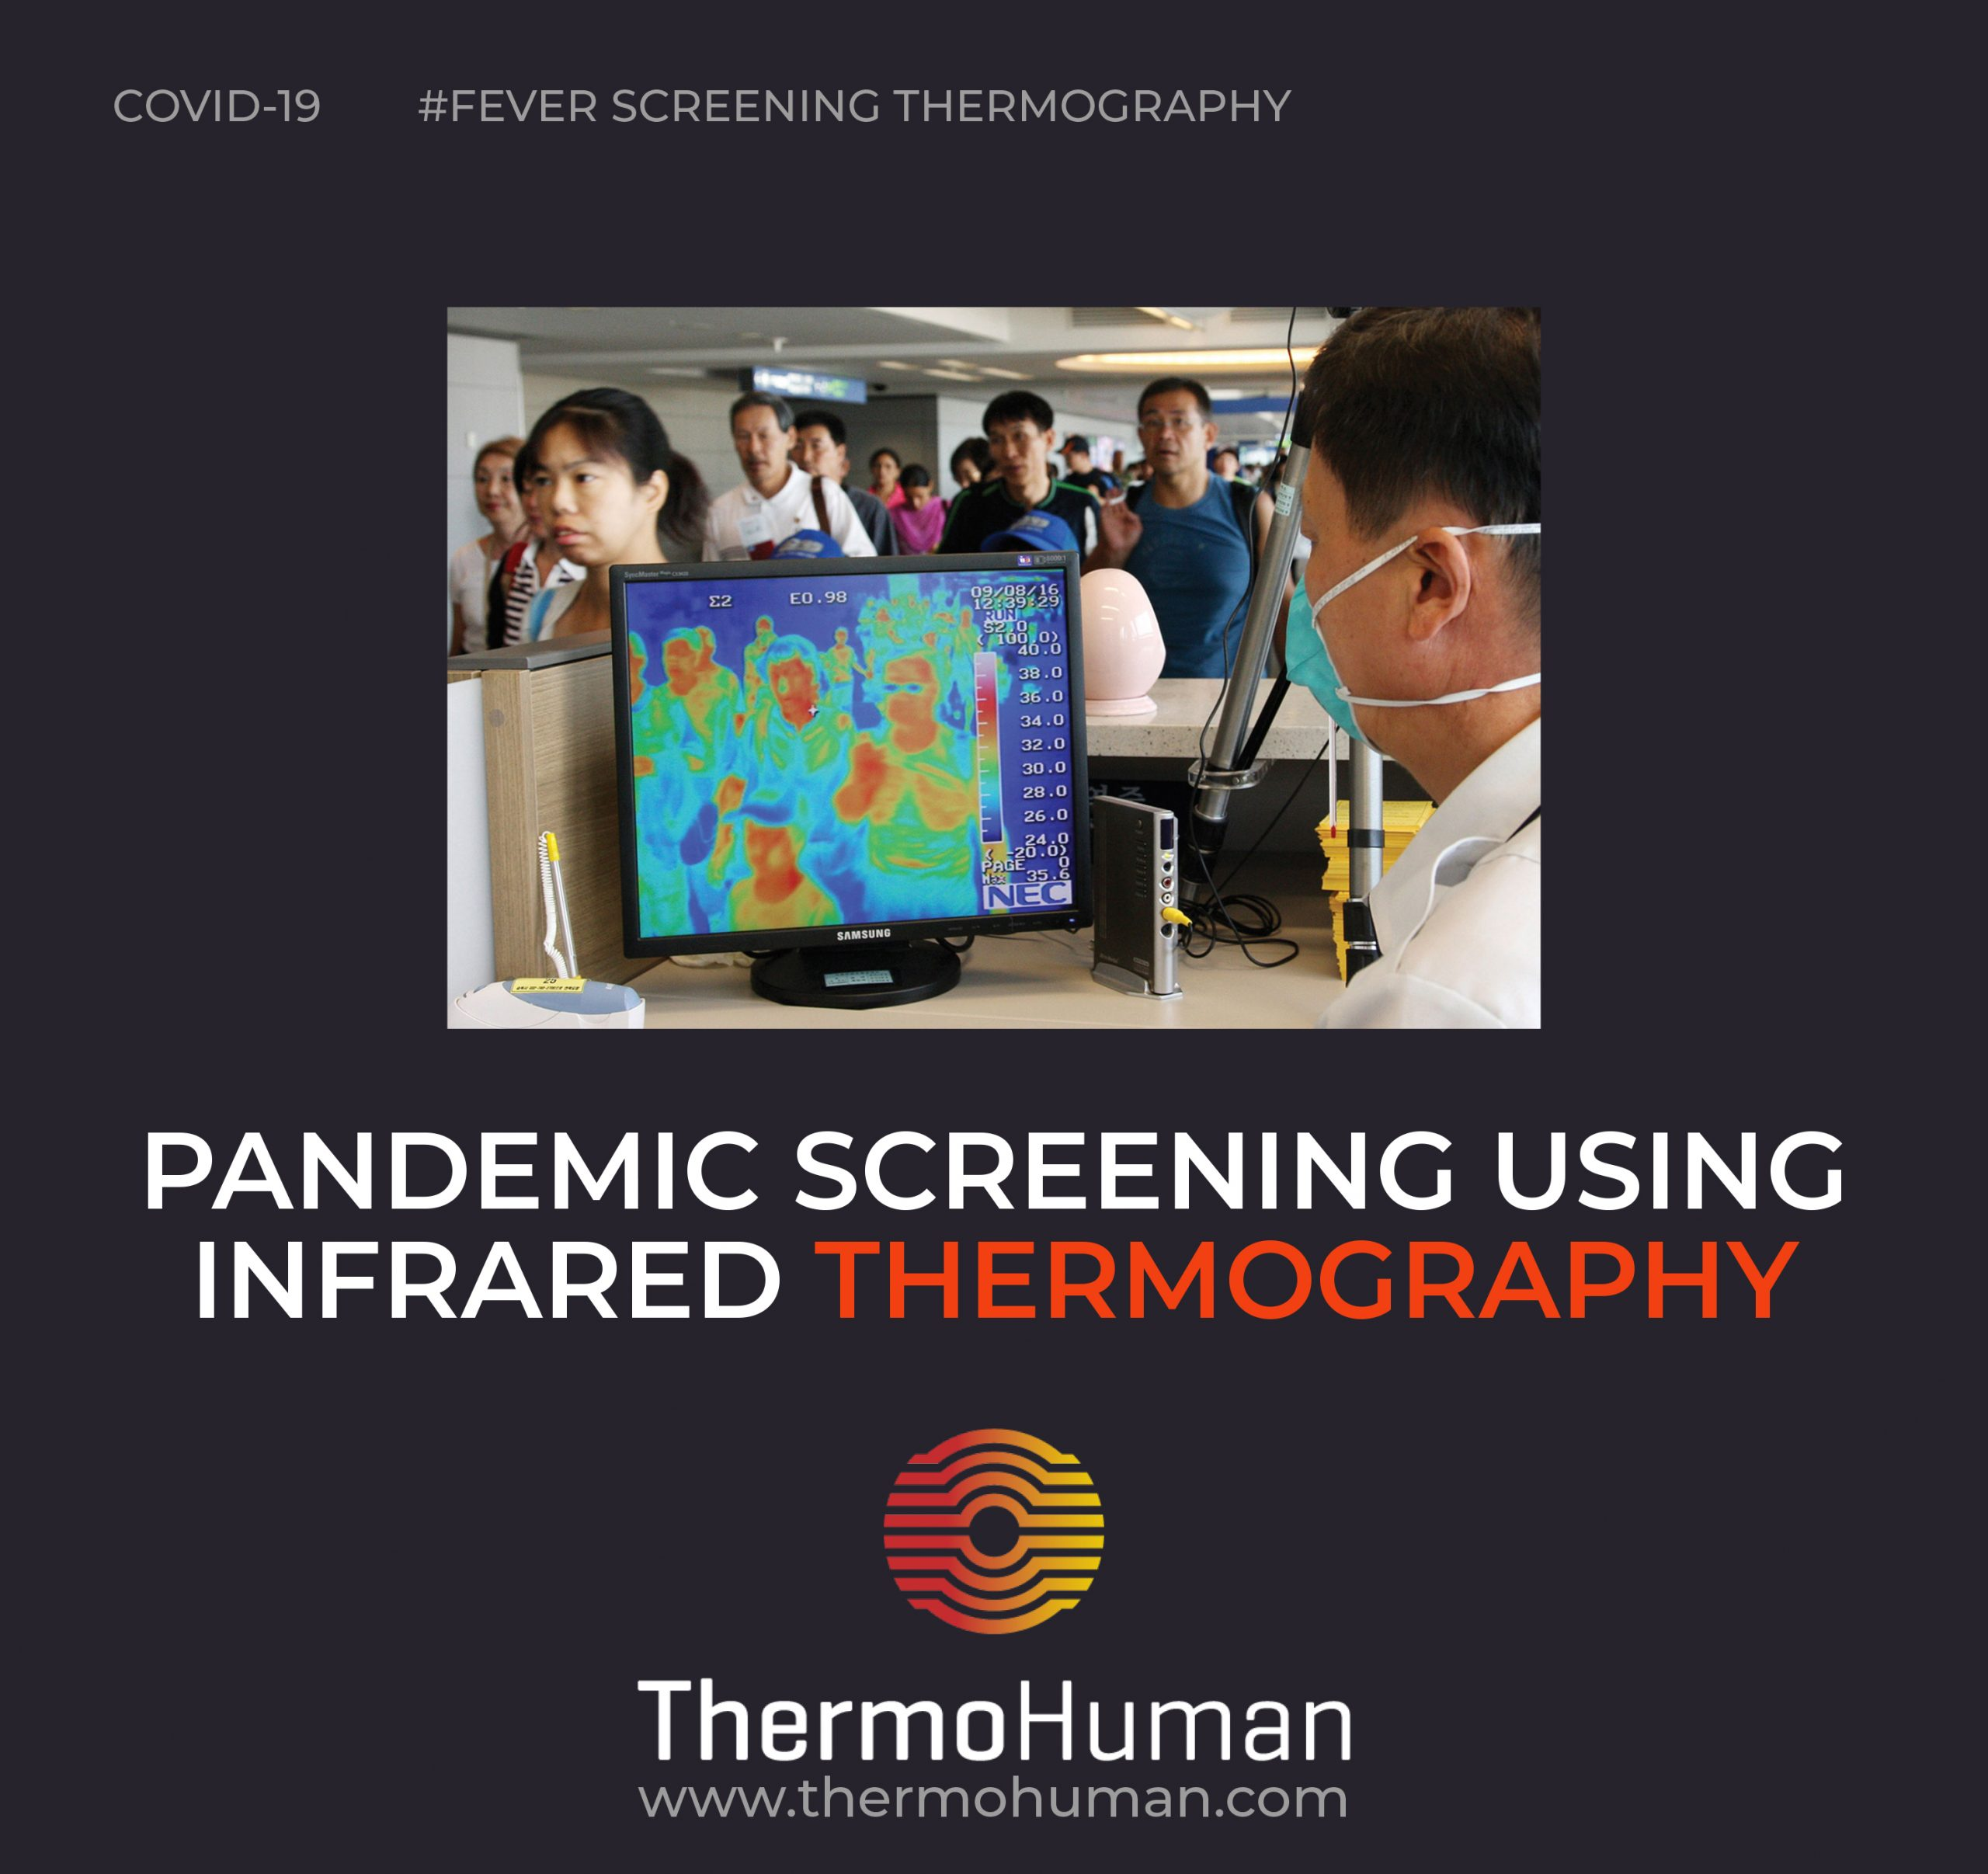 Pandemic screening using infrared thermography